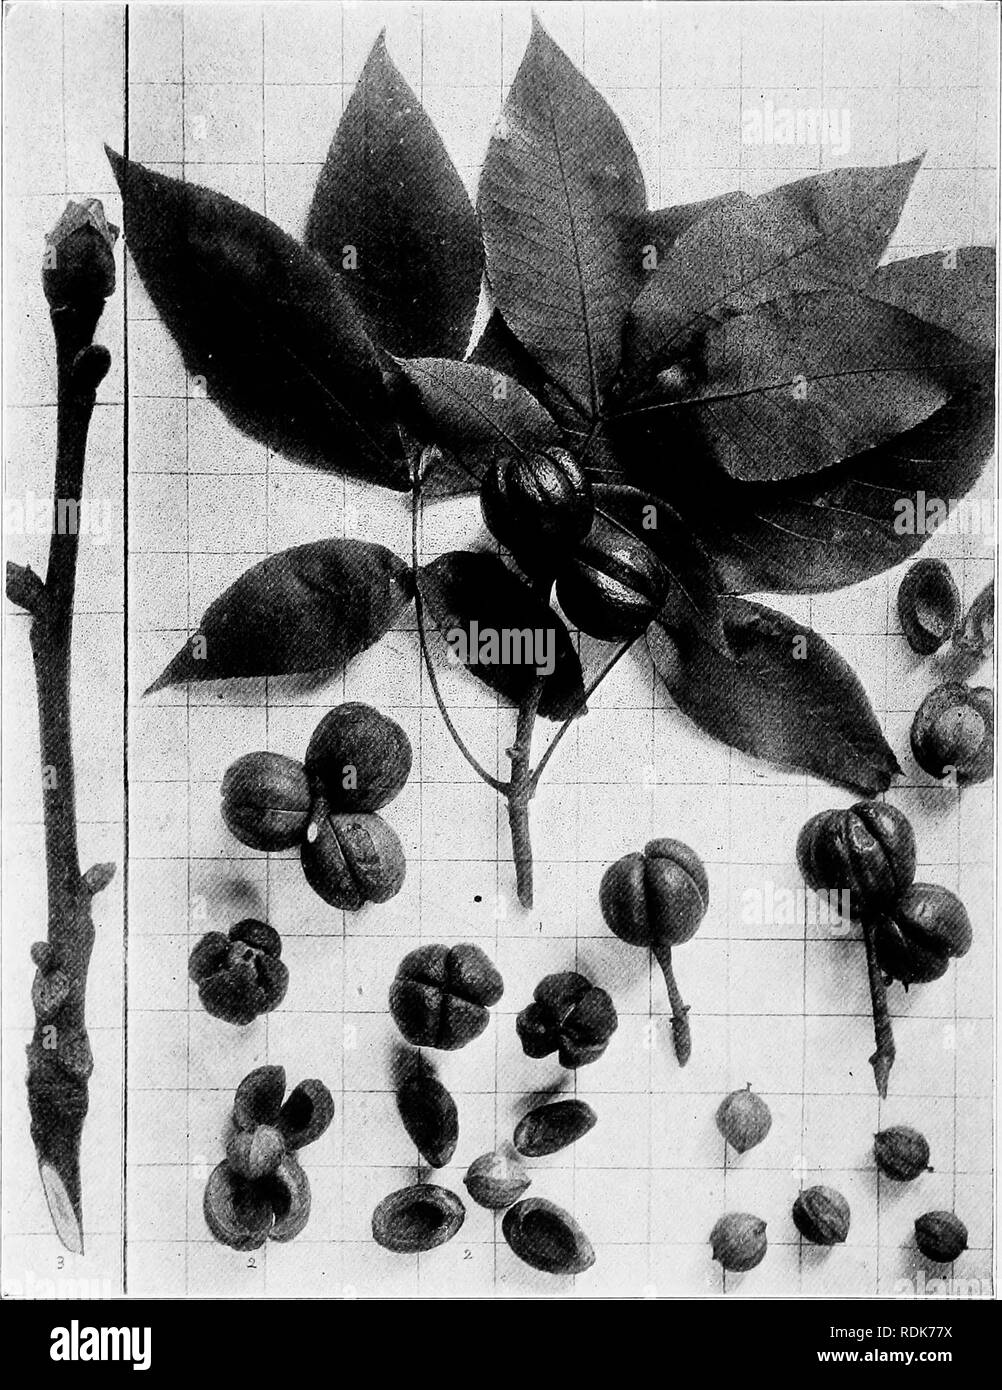 . Handbook of the trees of the northern states and Canada east of the Rocky Mountains, photo-descriptive . Trees. SHAG-BARK HICKORY. Ilicoria ovata (Mill.) Britt.-'. Fig. 68. Branch with mature leaves and fruit, i ; epicarp removed showing thick valves and nuts. 2 ; branchlet in winter, 3. 69. Trunlc of a tree near North Rush, N. Y.. Please note that these images are extracted from scanned page images that may have been digitally enhanced for readability - coloration and appearance of these illustrations may not perfectly resemble the original work.. Hough, Romeyn Beck, 1857-1924. Lowville, N. - Stock Image